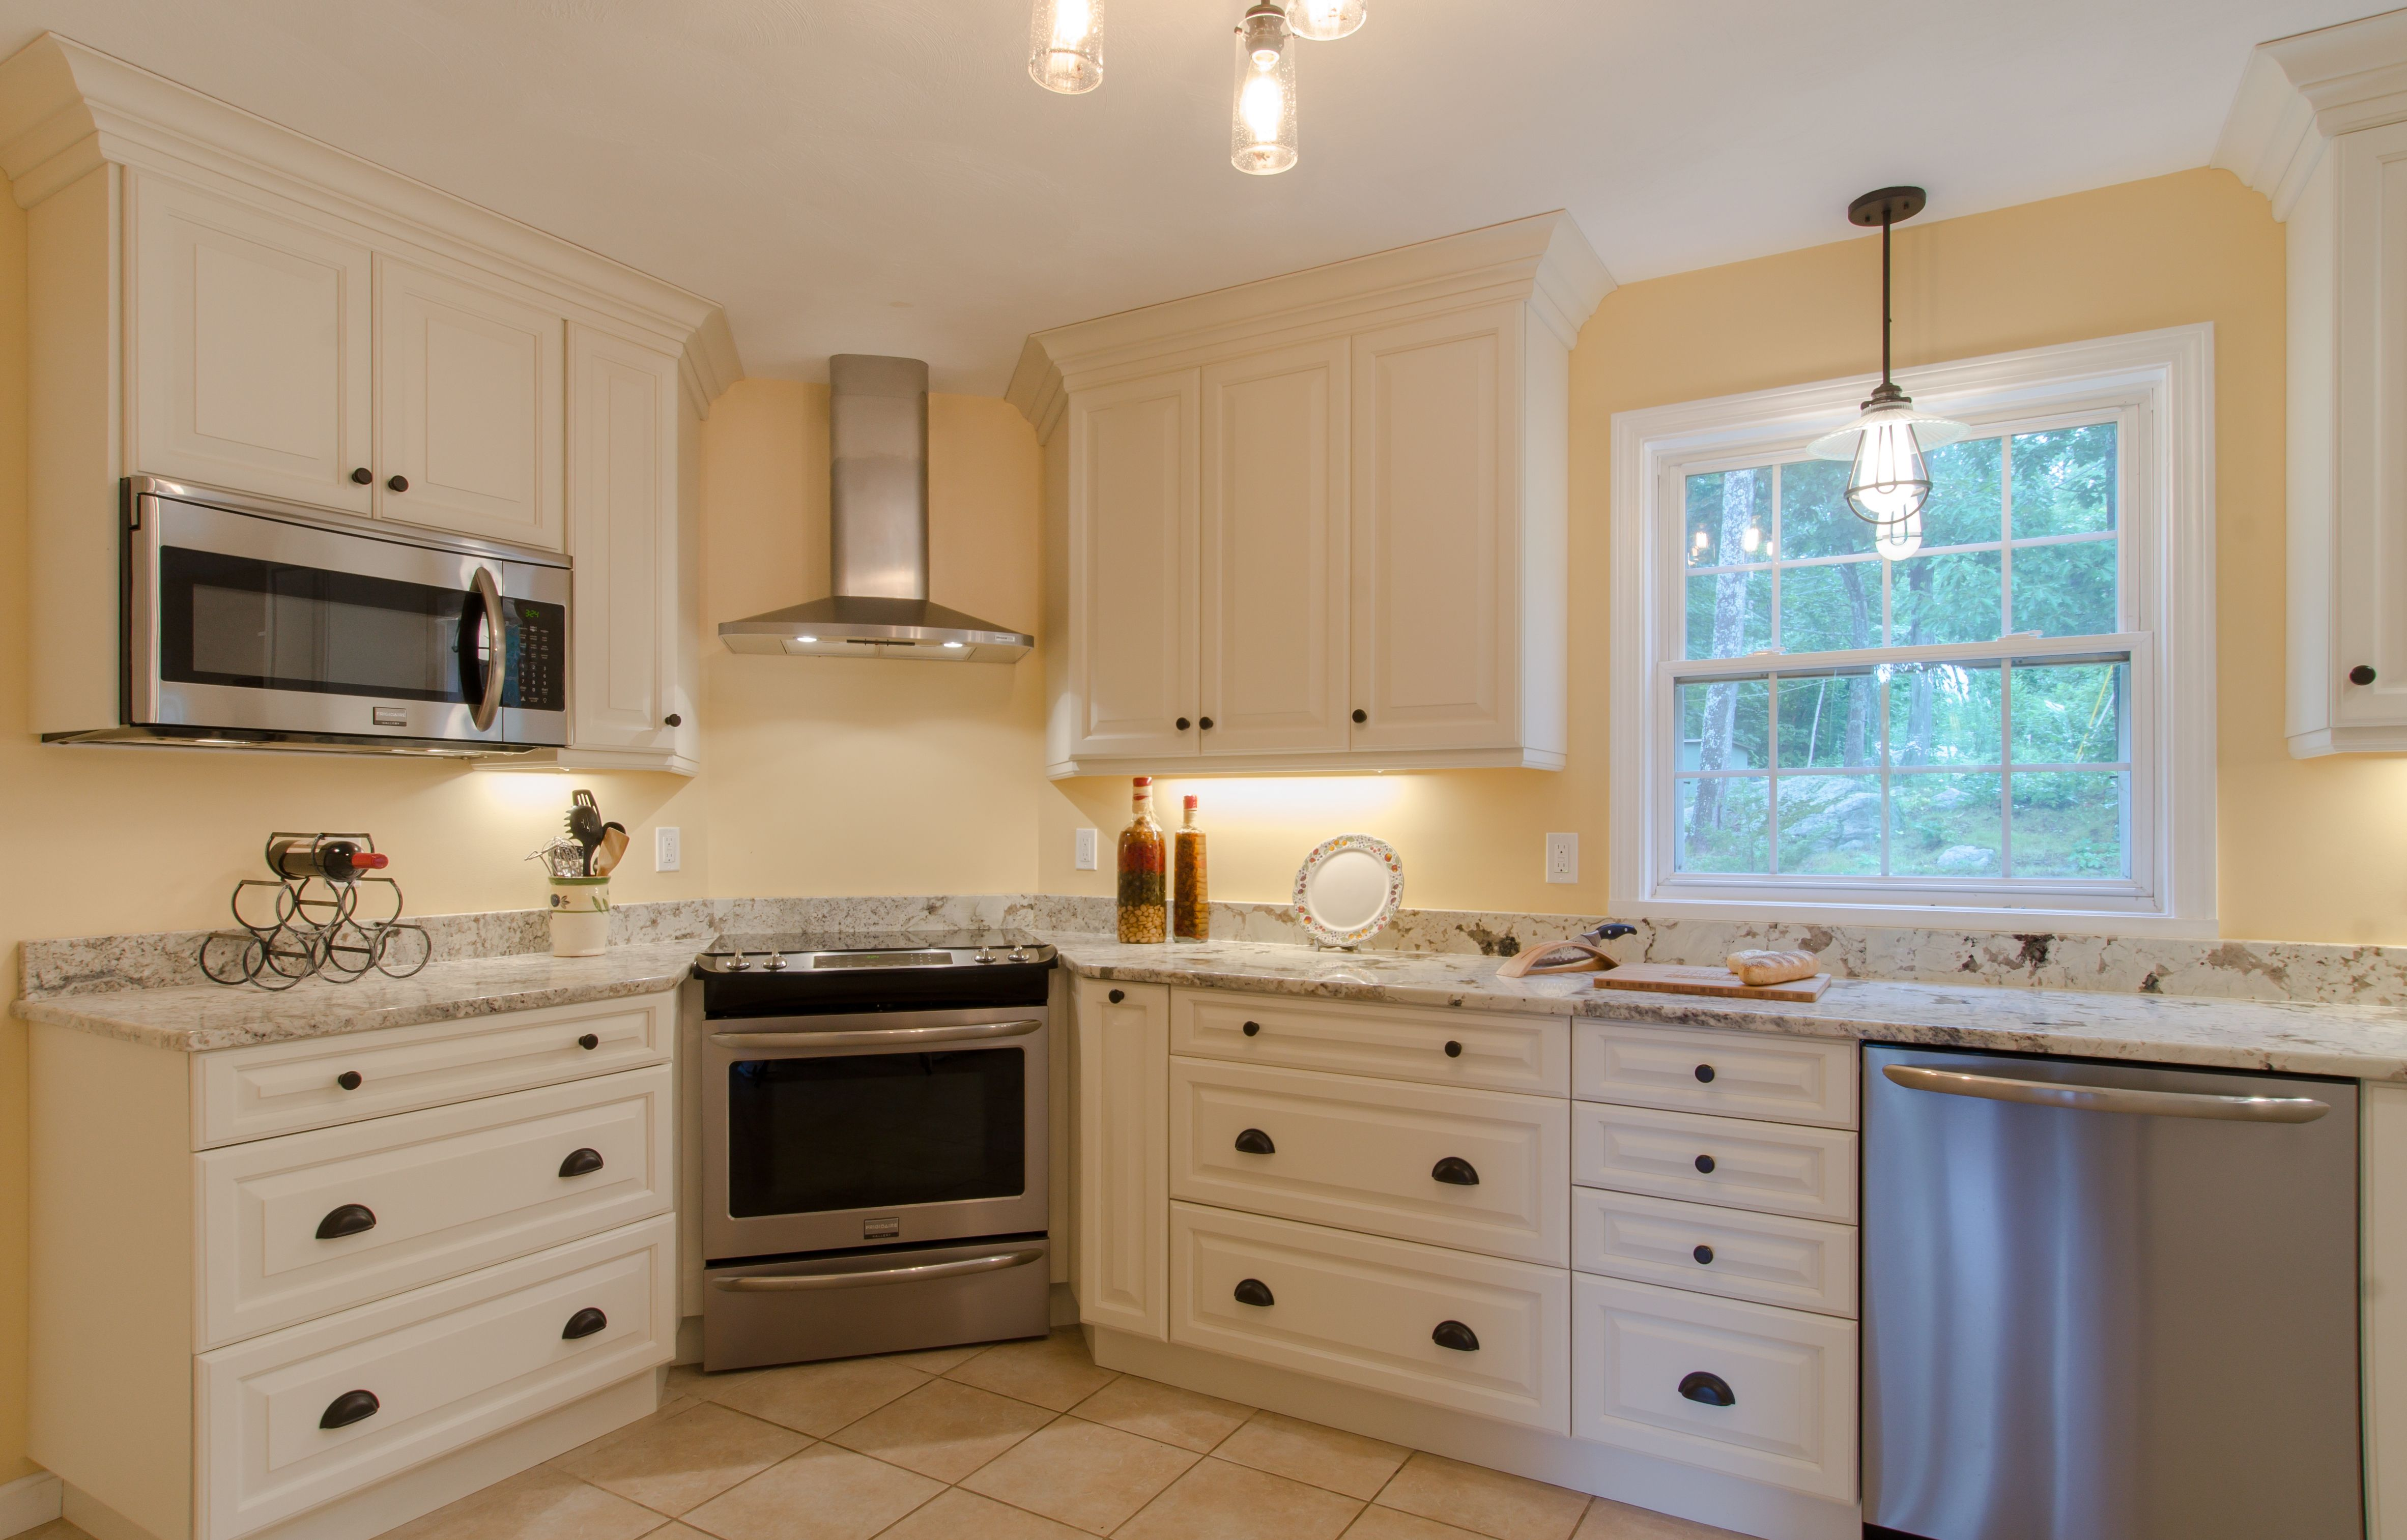 Blackdog Design Build Remodel In Amherst Salem Nh Ma Eclectic Kitchen Contemporary Kitchen Kitchen